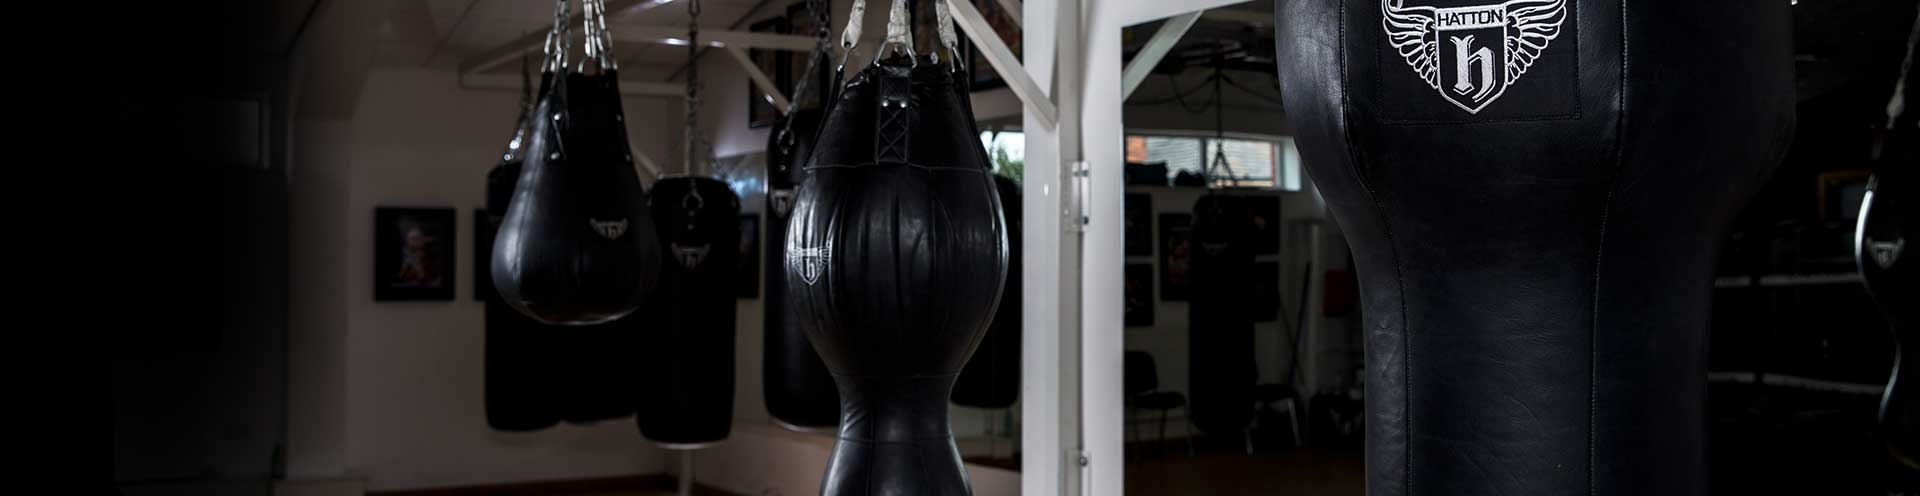 Hatton Punch Bags